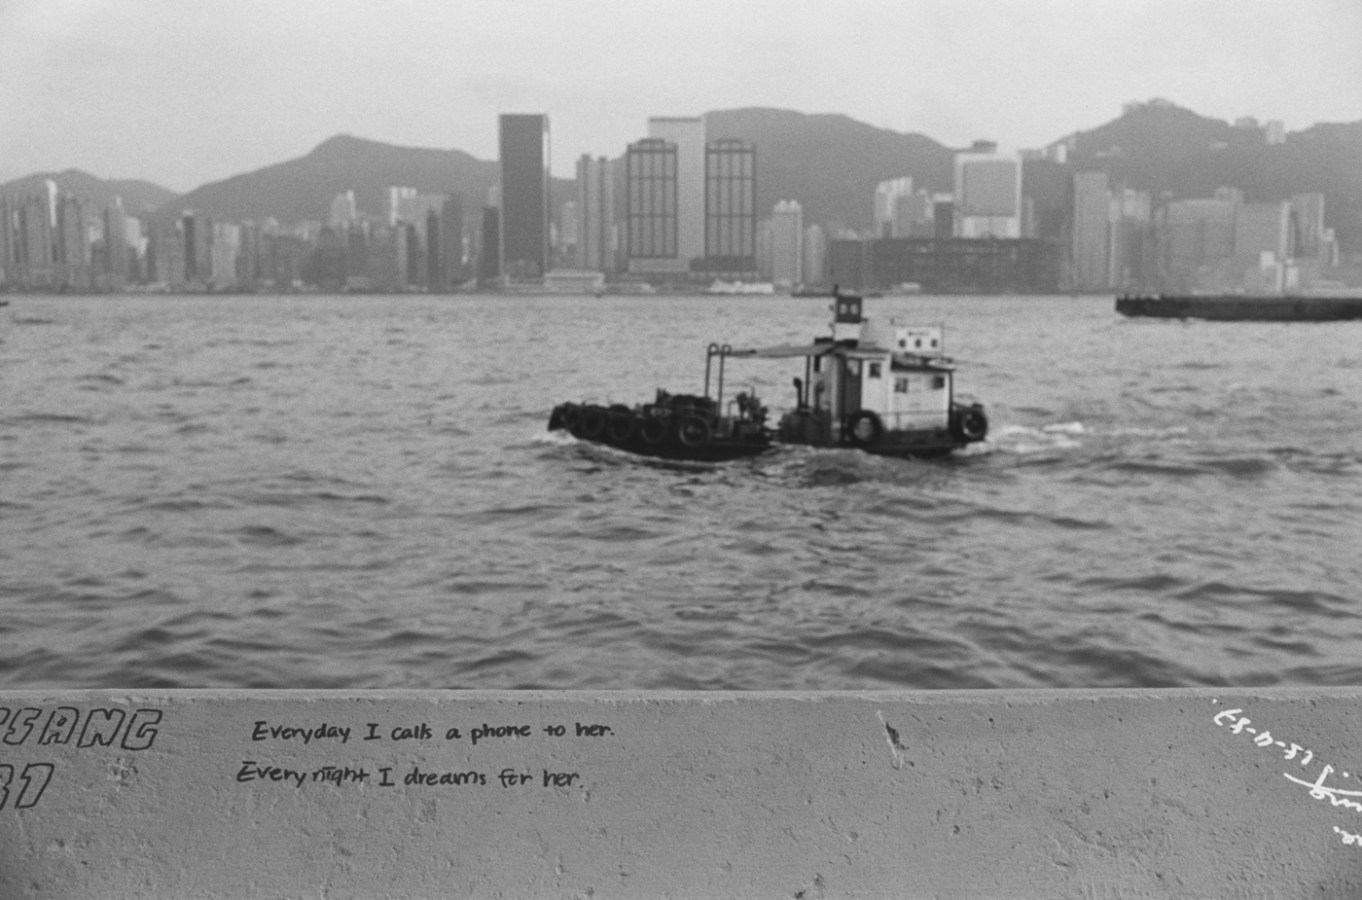 Black and white photograph with graffiti in the foreground a boat and a city skyline in the background